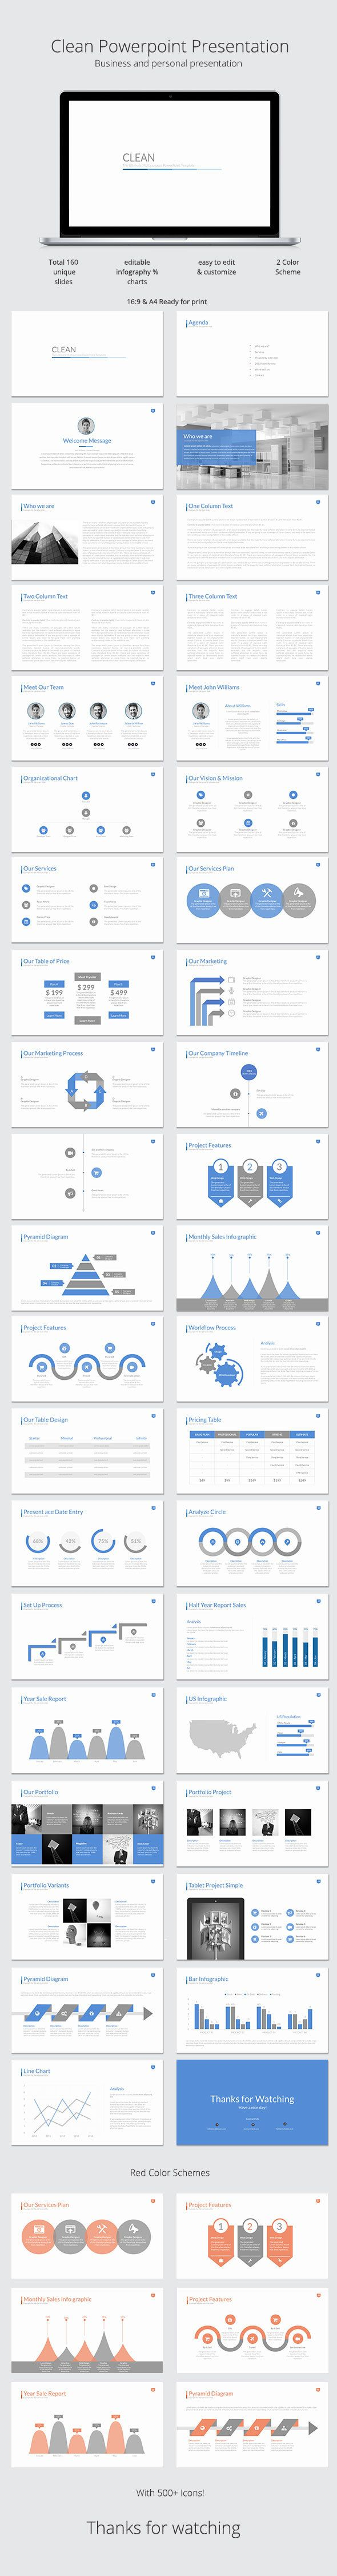 Coolmathgamesus  Gorgeous  Ideas About Powerpoint Presentations On Pinterest With Fascinating Clean Powerpoint Template With Beautiful Kids Powerpoint Template Also Watermark Powerpoint  In Addition Internet Powerpoint And Ap Biology Campbell Th Edition Powerpoints As Well As Sensory Language Powerpoint Additionally Kindergarten Sight Words Powerpoint From Pinterestcom With Coolmathgamesus  Fascinating  Ideas About Powerpoint Presentations On Pinterest With Beautiful Clean Powerpoint Template And Gorgeous Kids Powerpoint Template Also Watermark Powerpoint  In Addition Internet Powerpoint From Pinterestcom